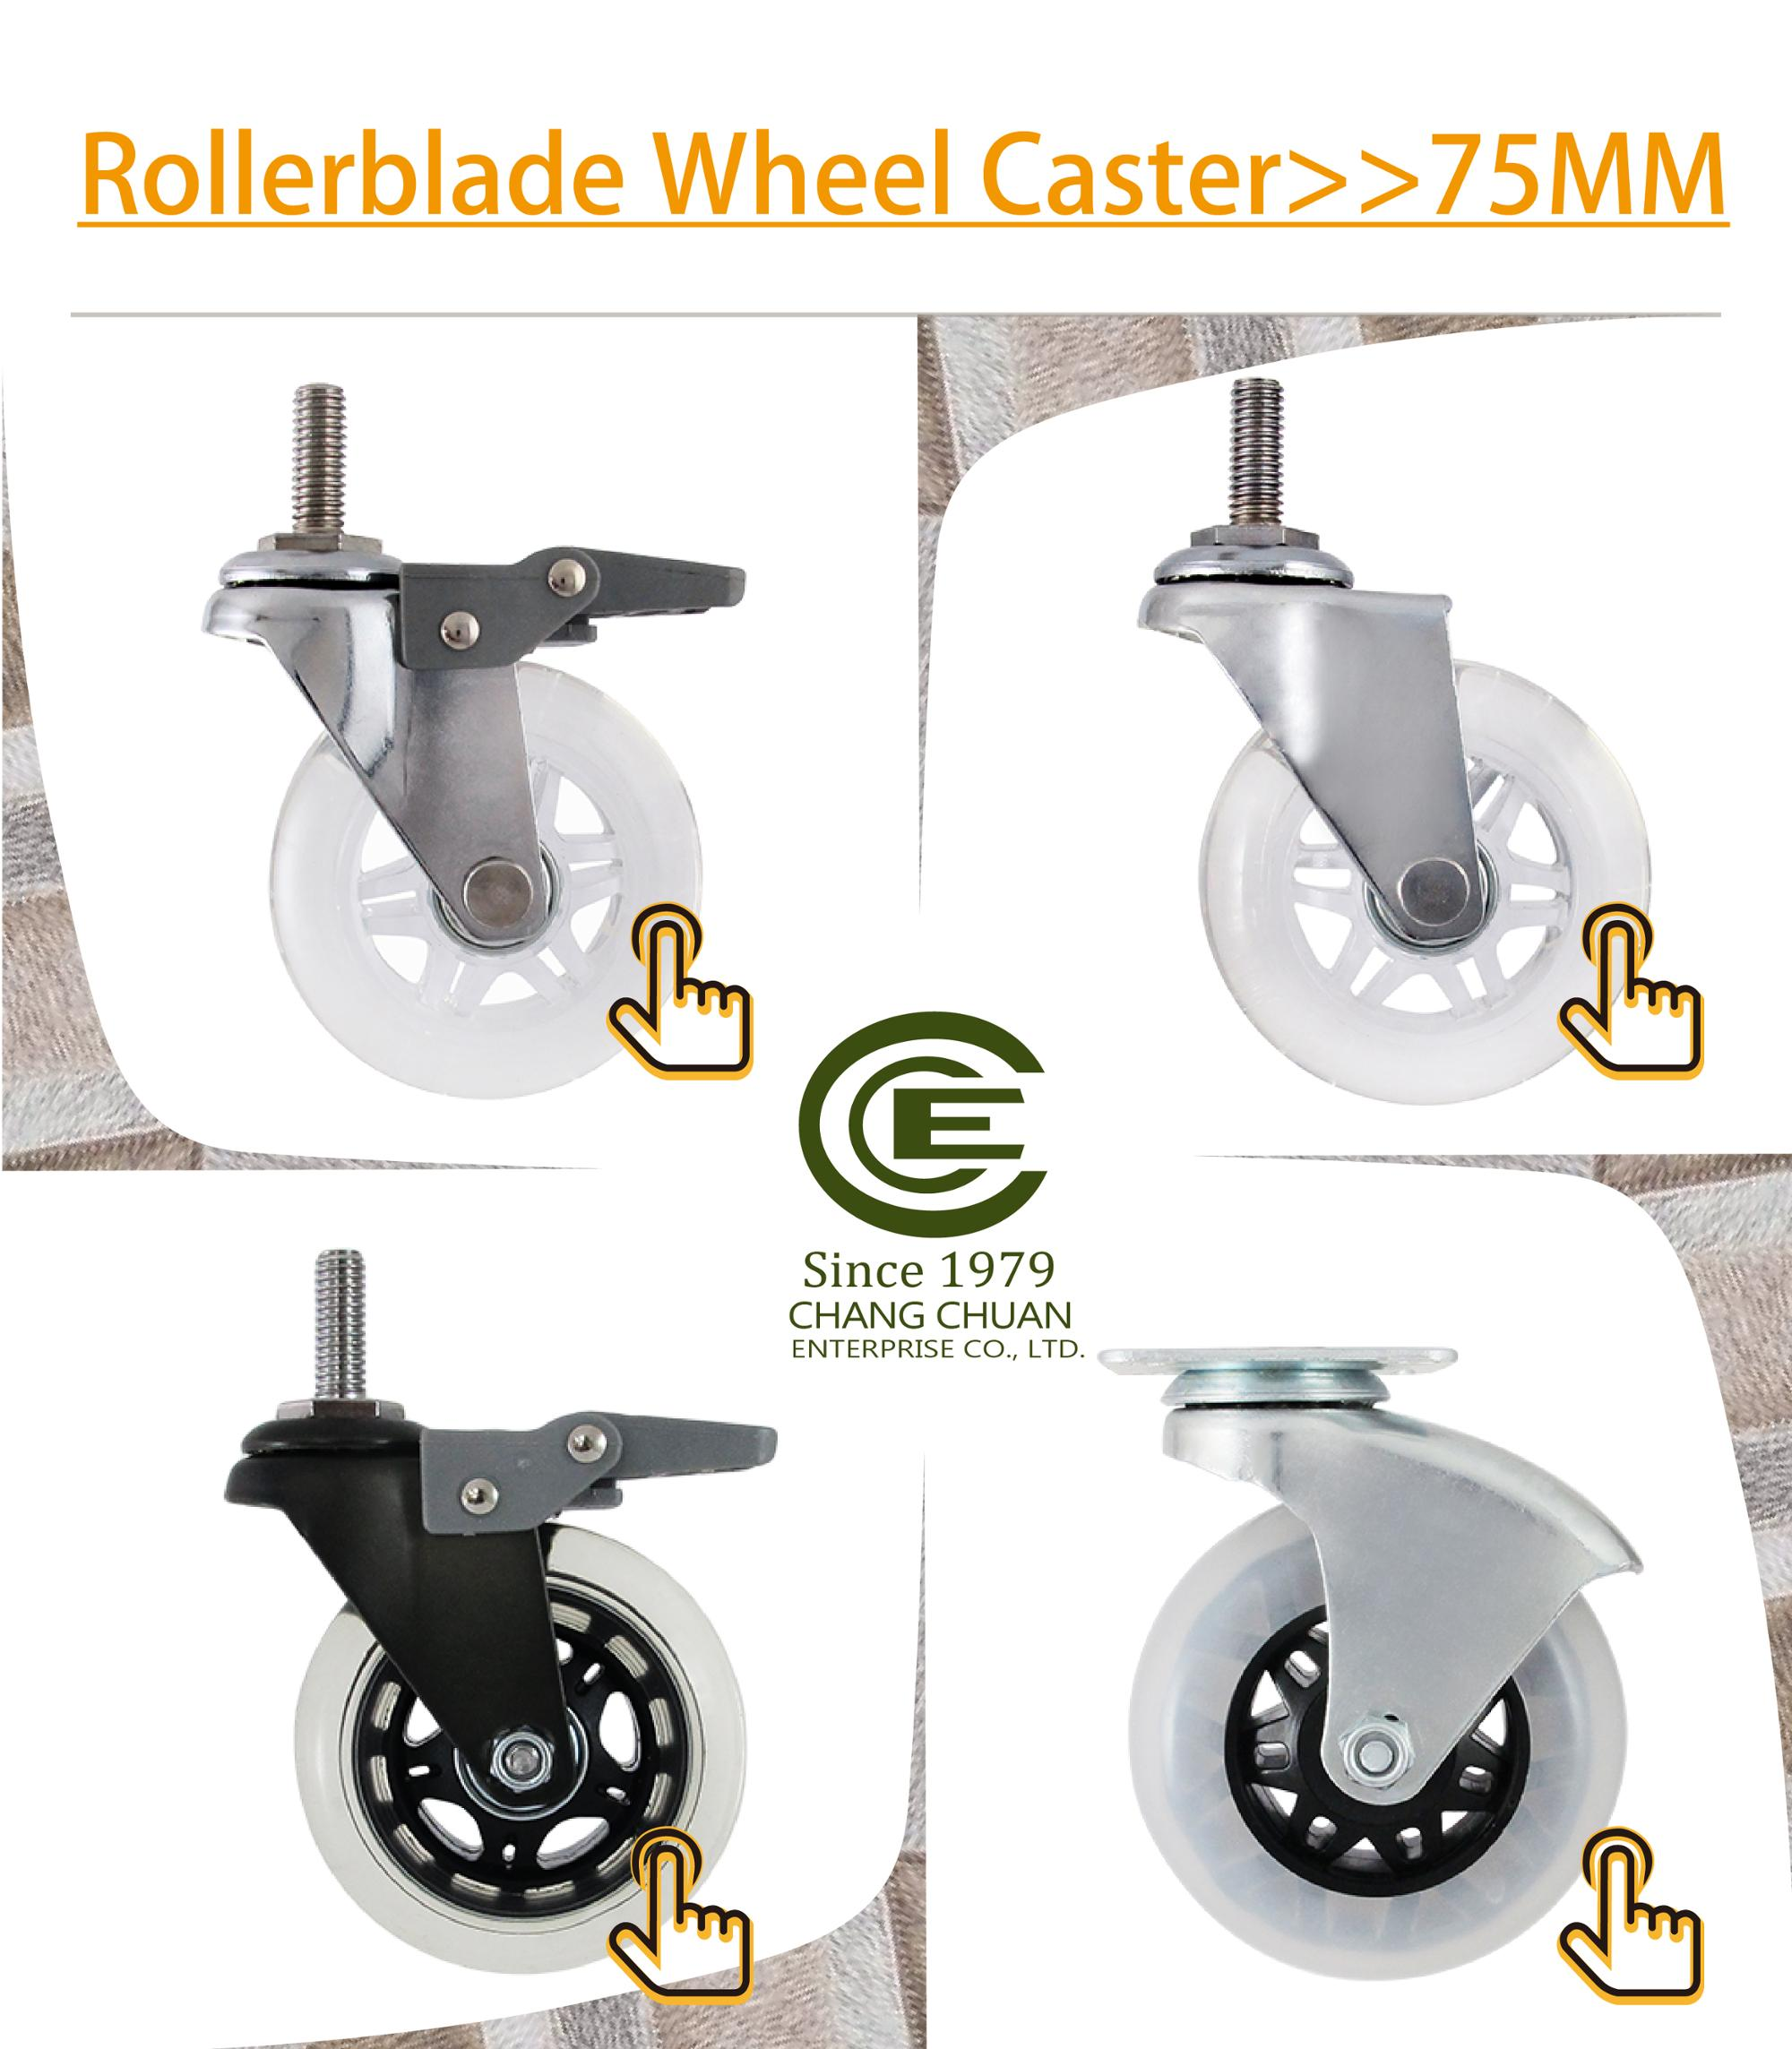 CCE Caster 3 Inch Trolley Polyurethane Wheel With Ball Bearing Casters